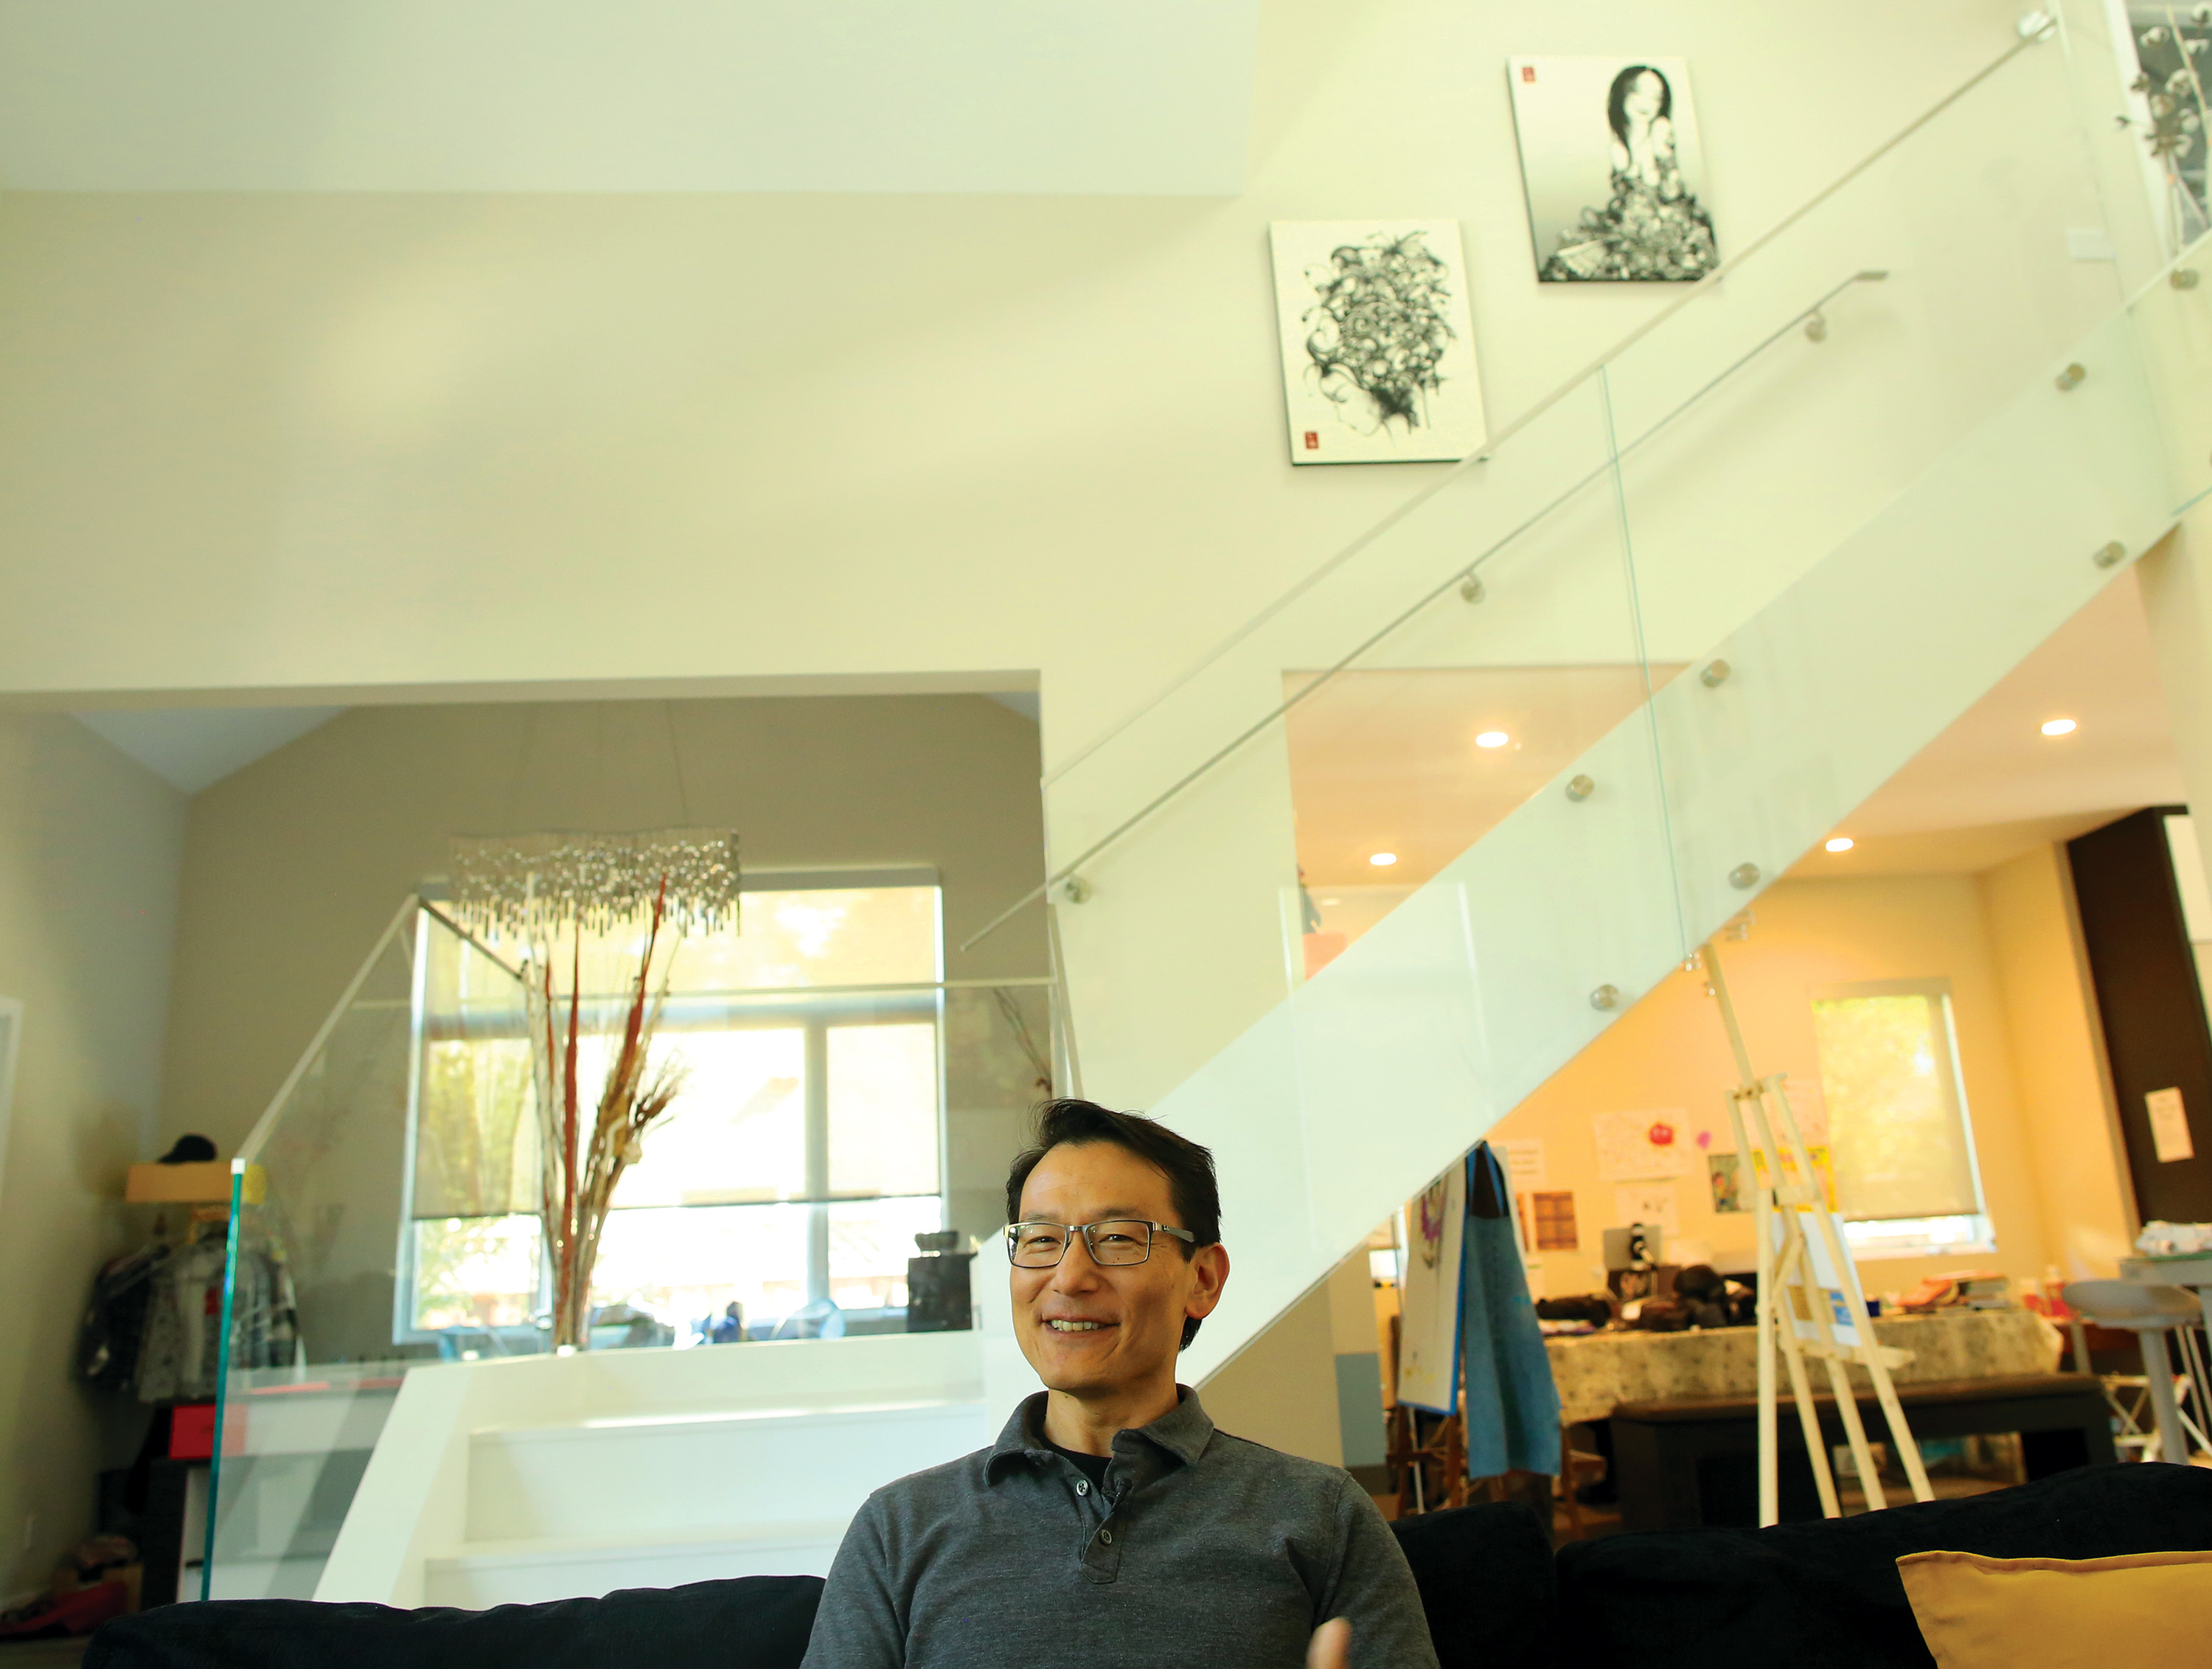 David Shen, a resident of Churchill Avenue in Palo Alto, talks about his neighborhood, where residents have banded together to fight a possible taking of their properties as part of the construction of a new rail crossing. Photo by Sammy Dallal.